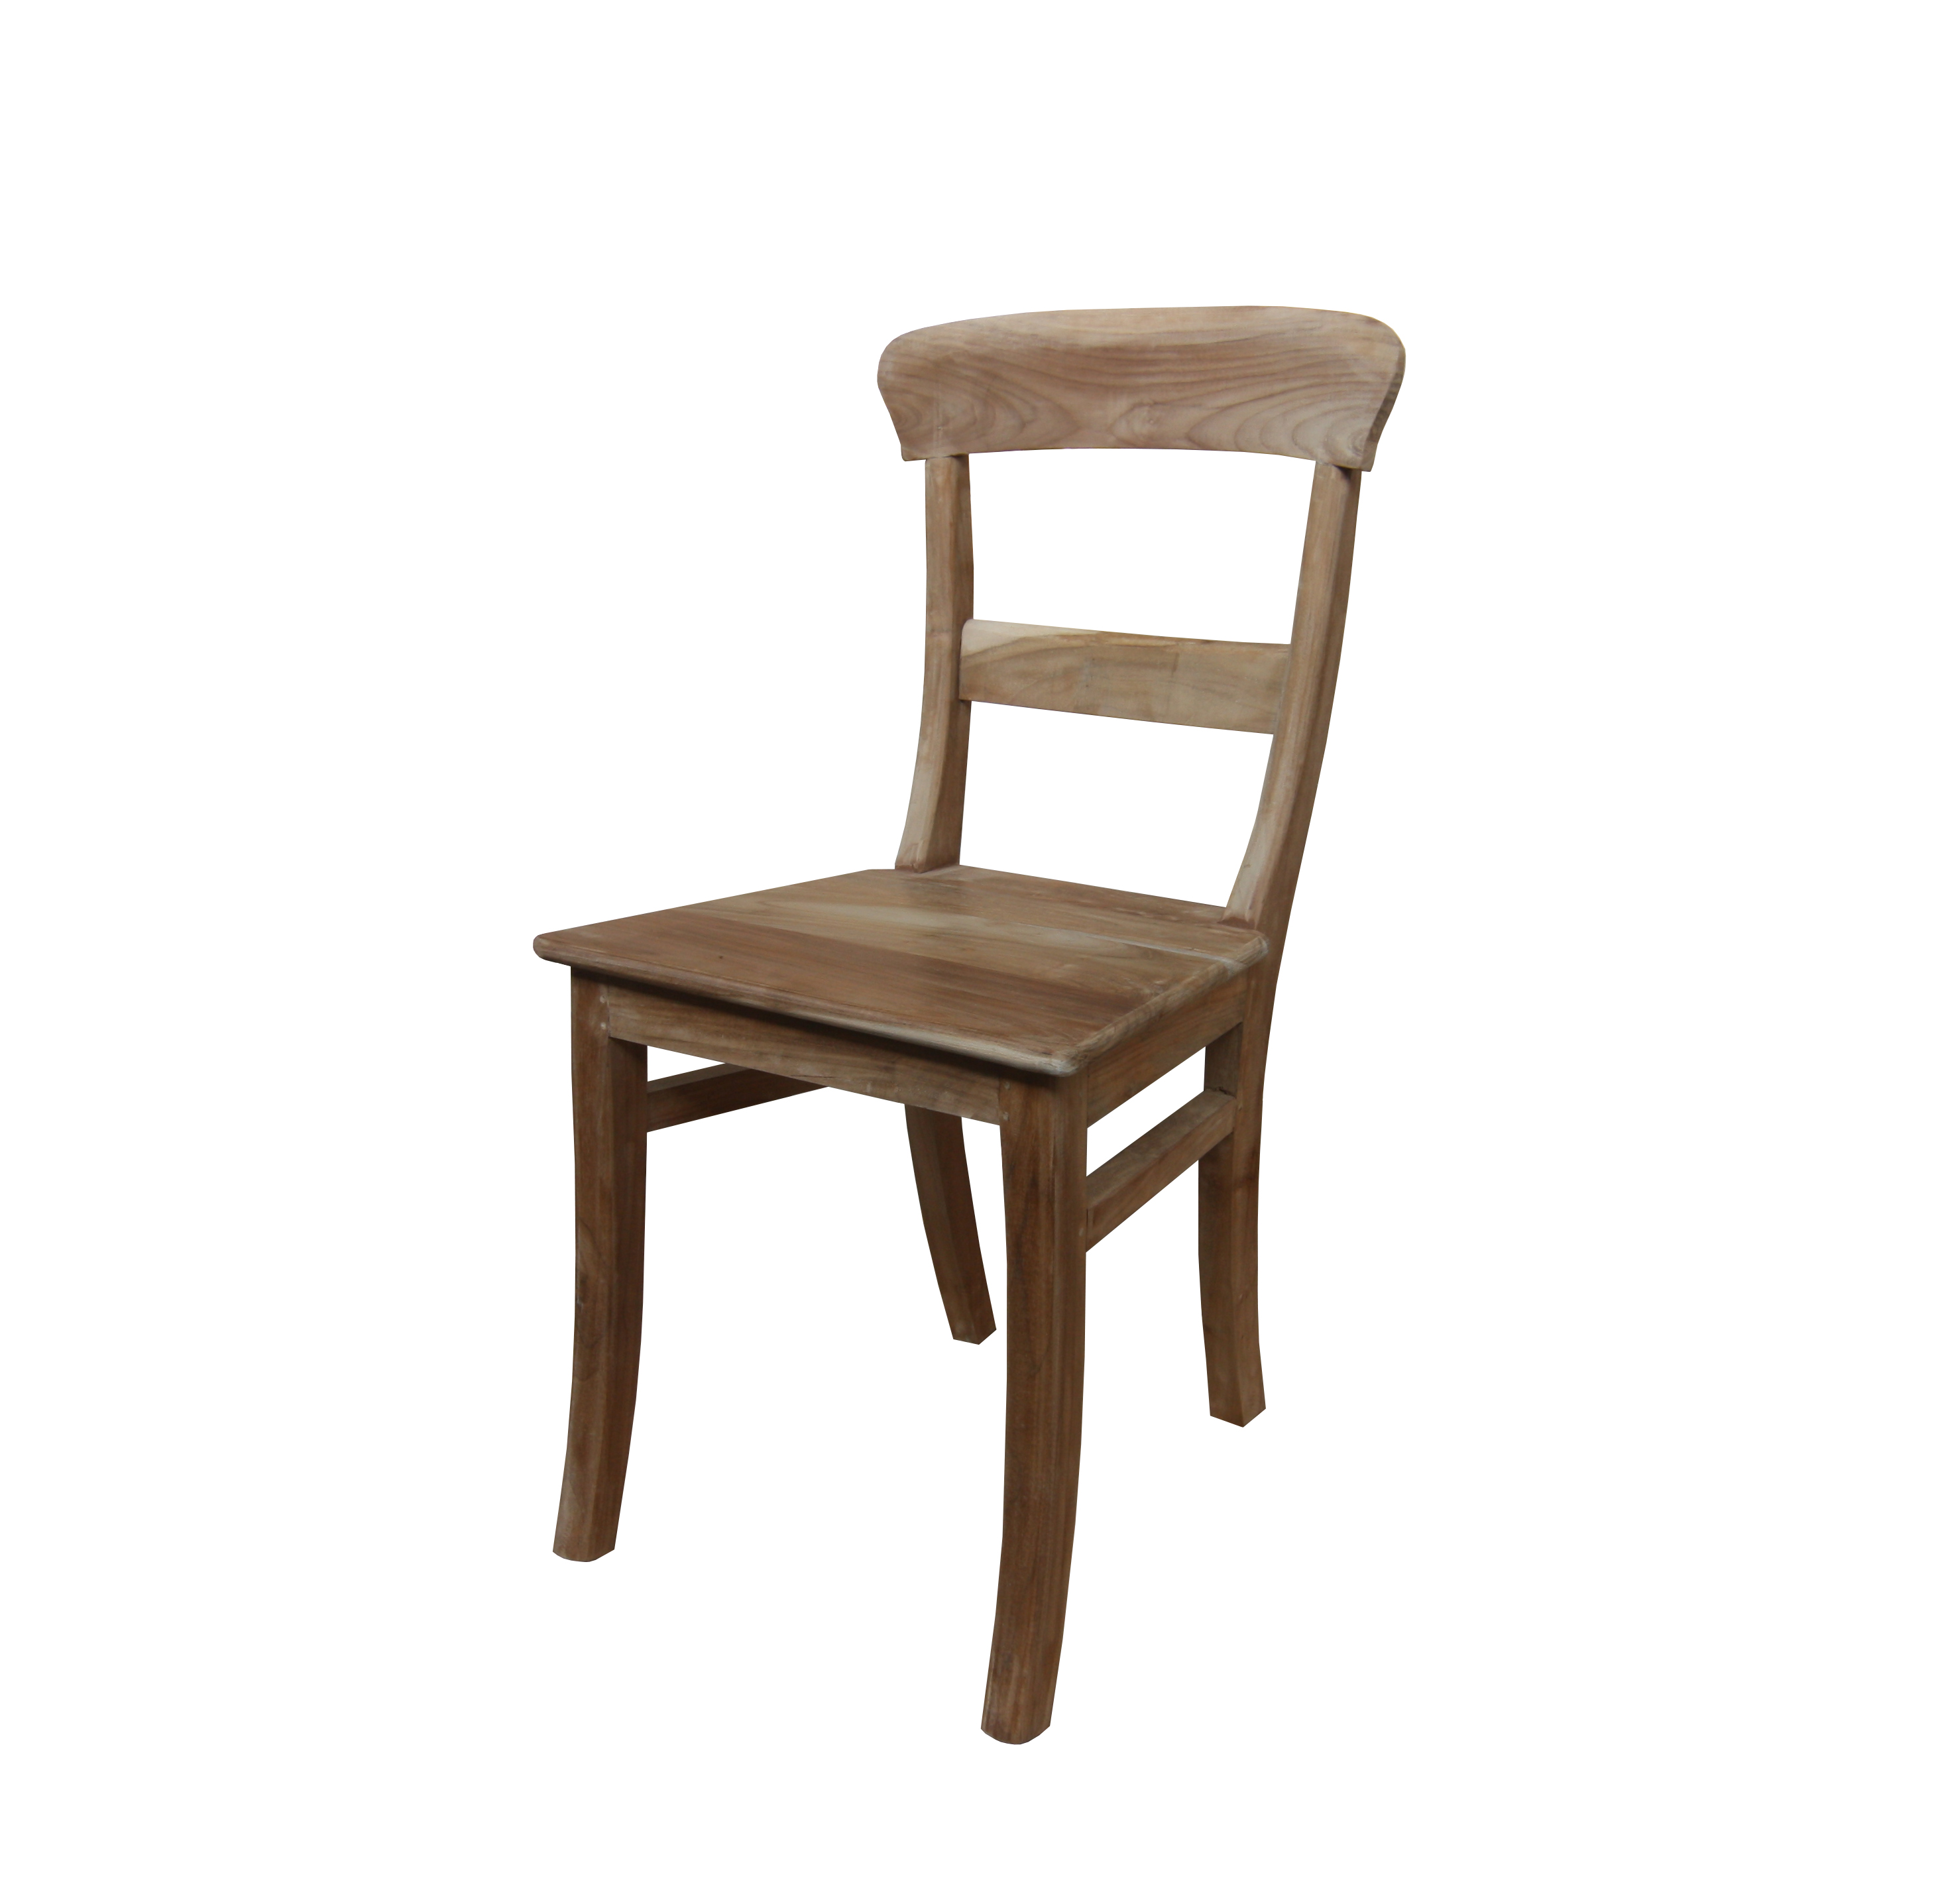 Endok reclaimed dining chair